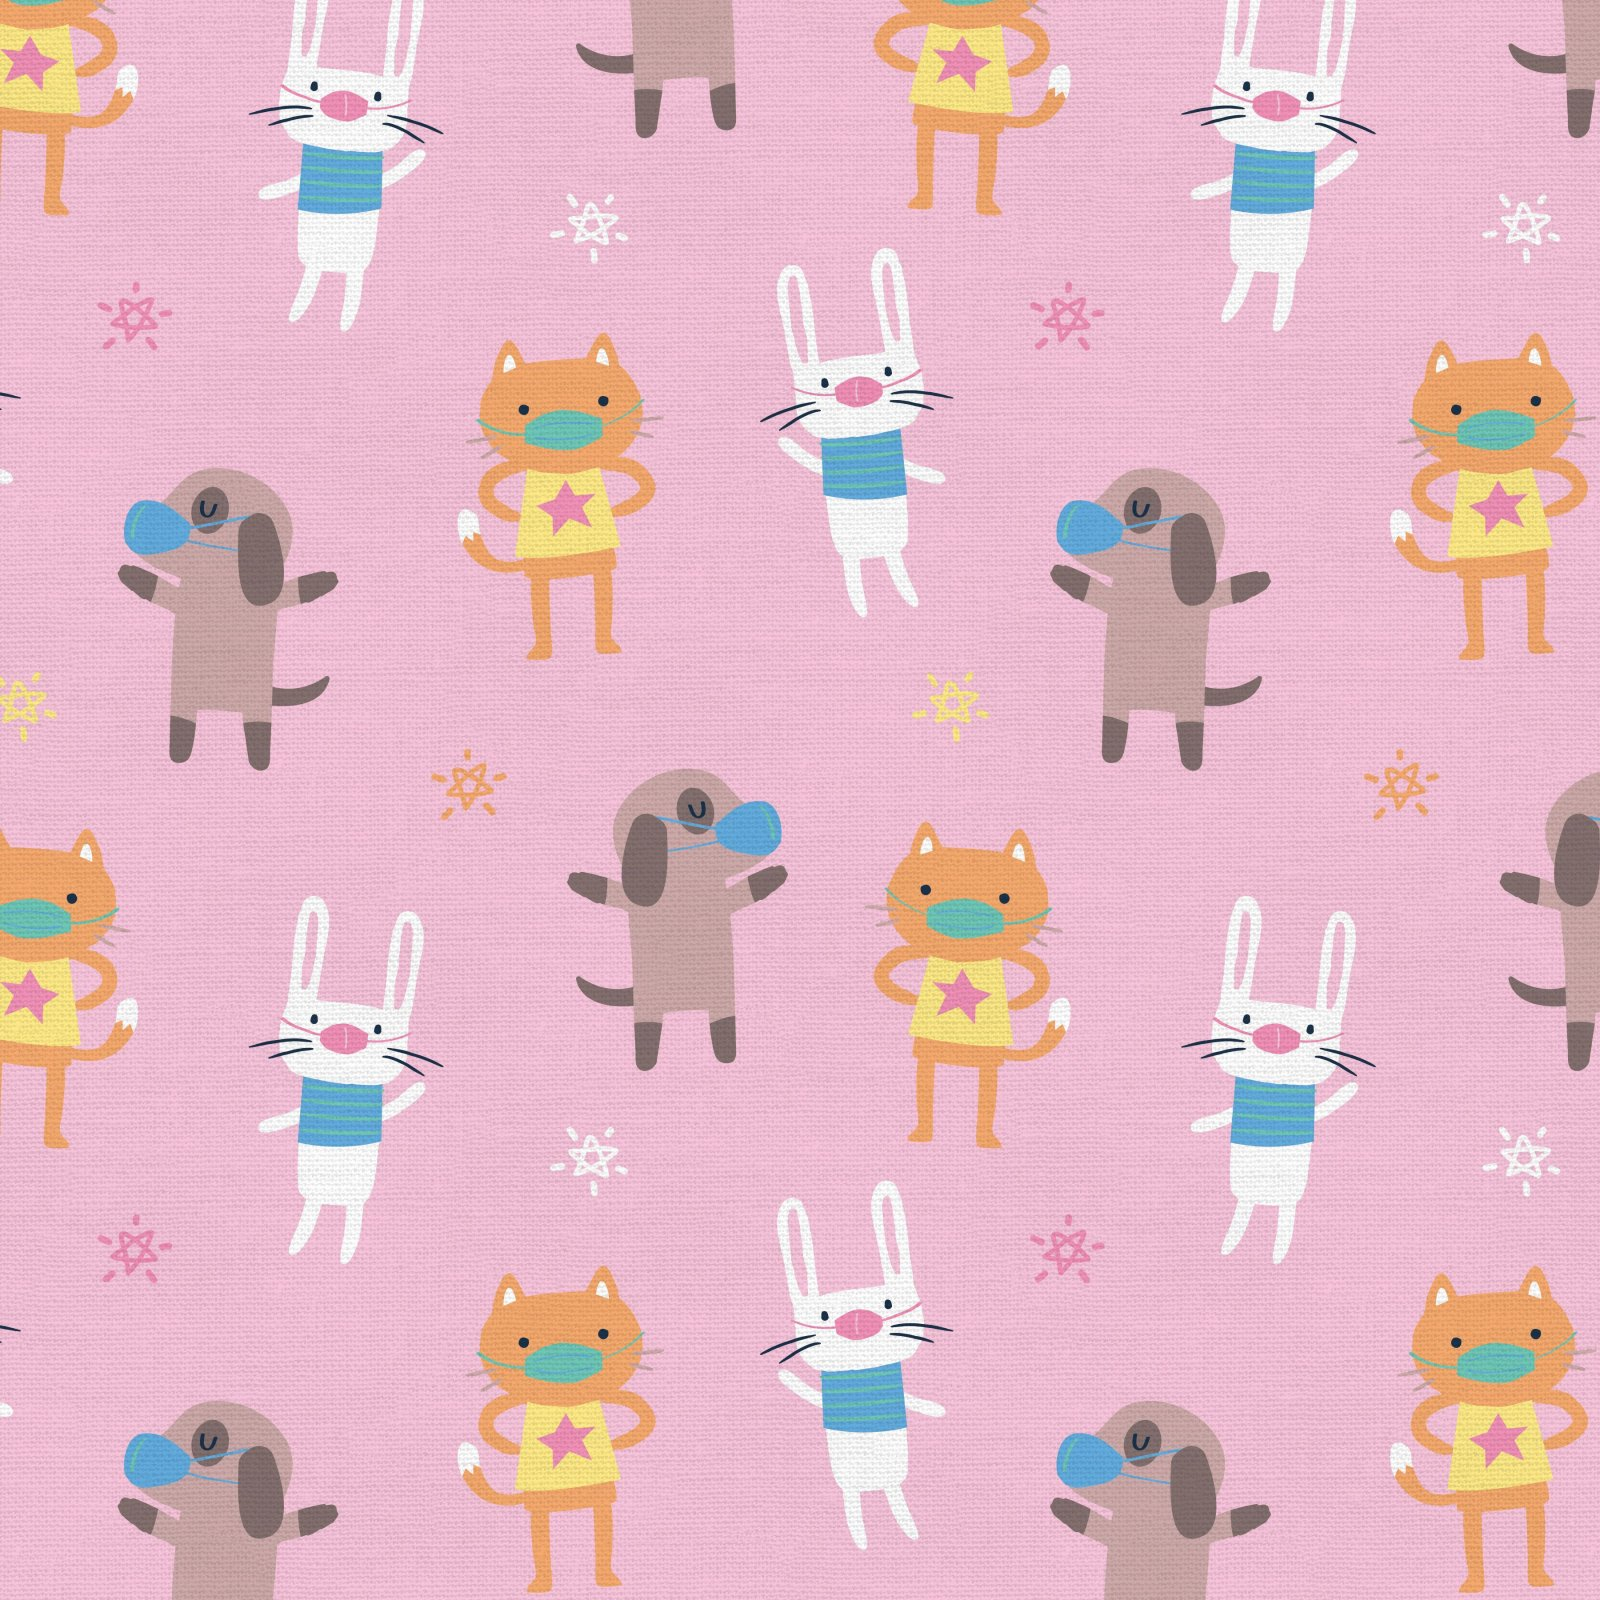 PROMO* PS-Mask Up! 120-21769 Pink - Cat Dog Bunny